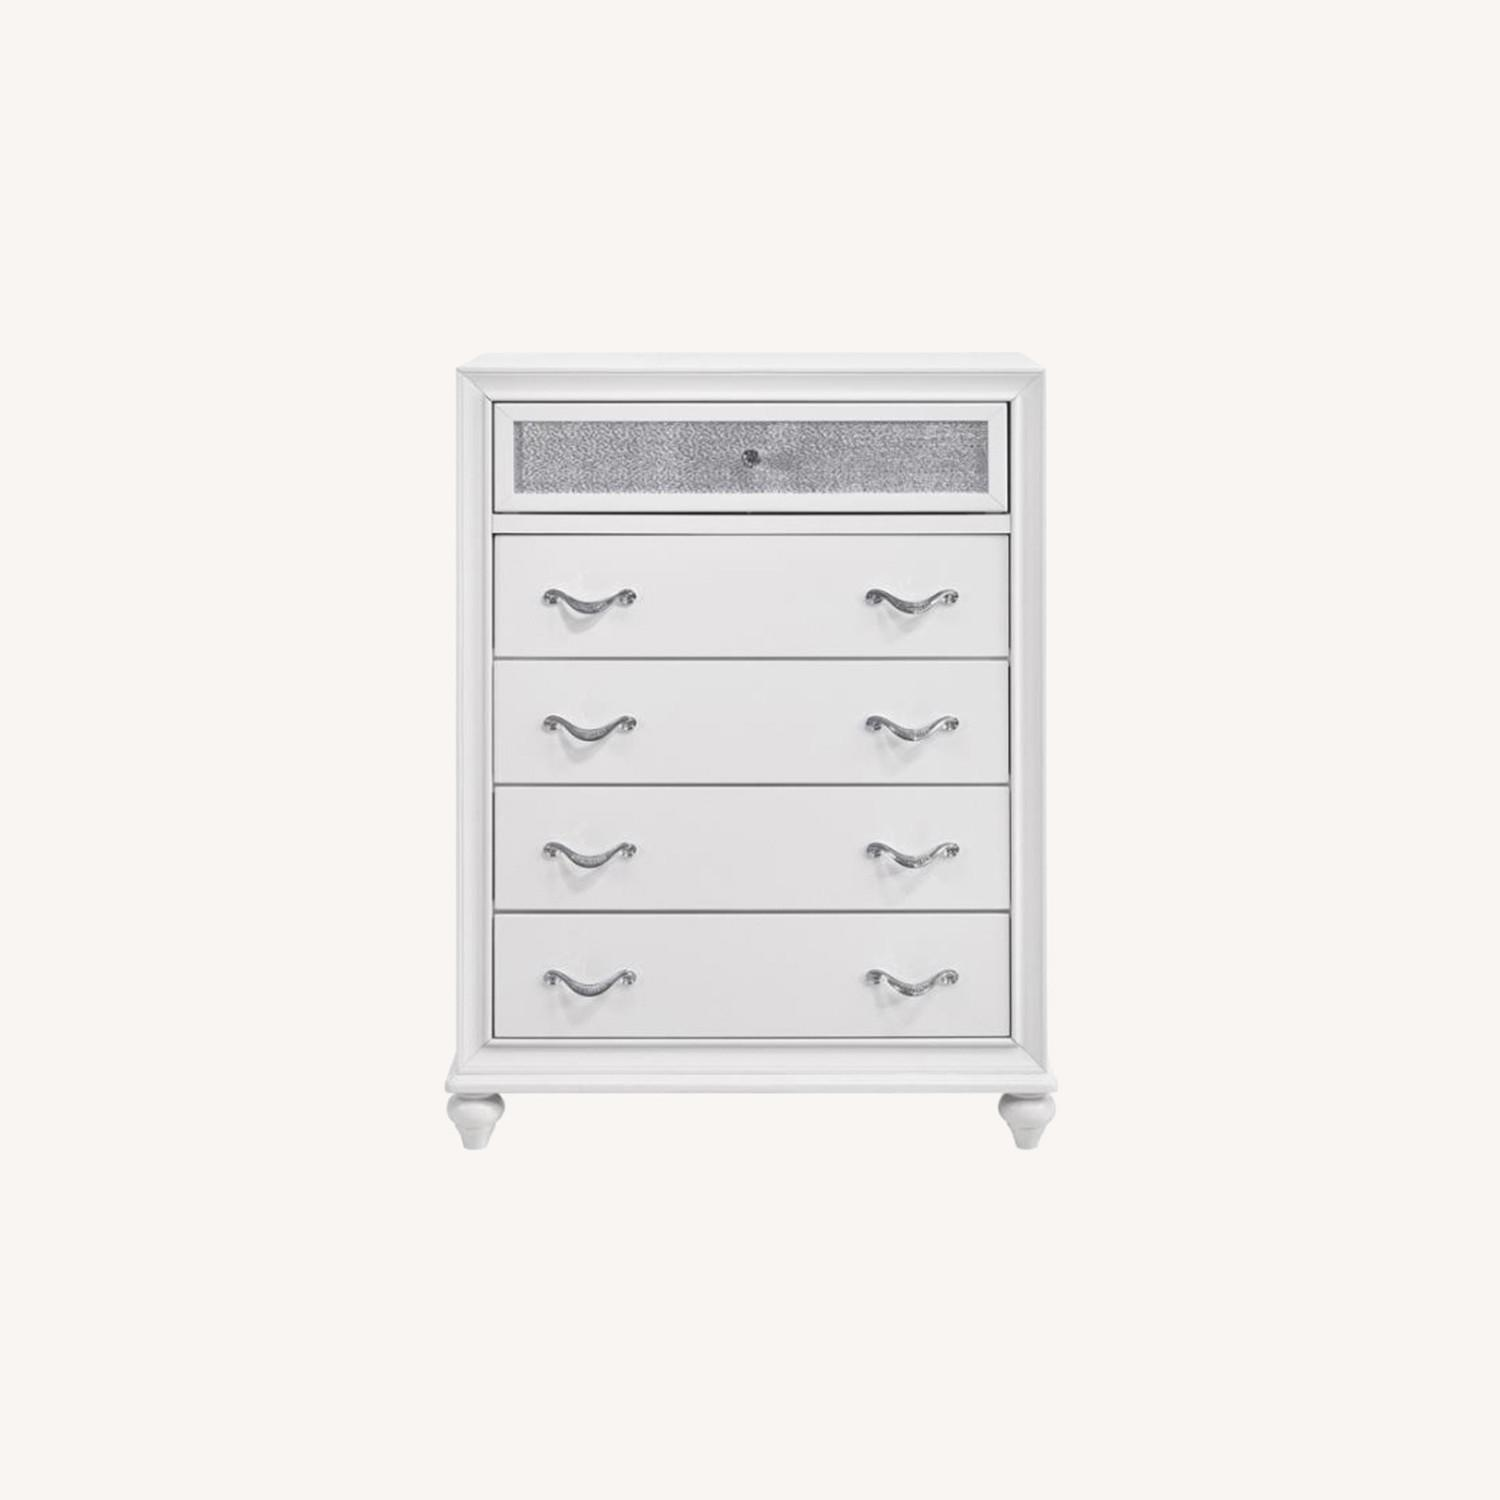 Chest In White W/ Glittering Drawer Fronts - image-7